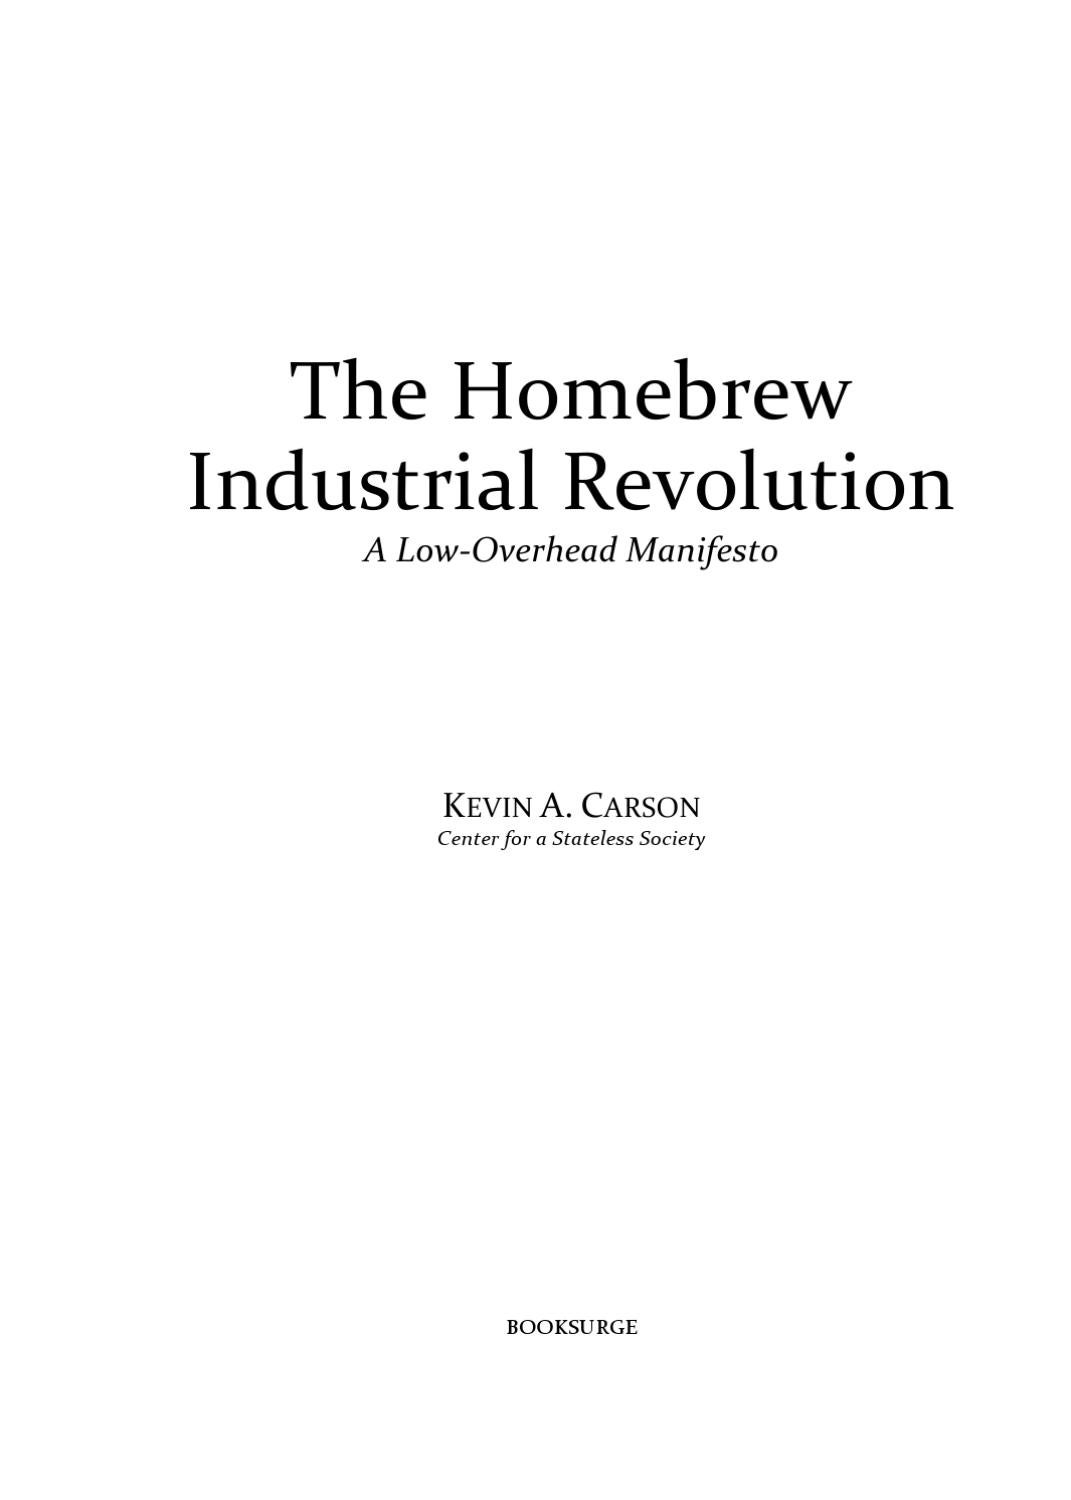 Scr Circuit Design Http Homemadecircuitsandschematicsblogspotcom The Homebrew Industrial Revolution A Low Overhead Manifesto By Giorgio Bertini Issuu